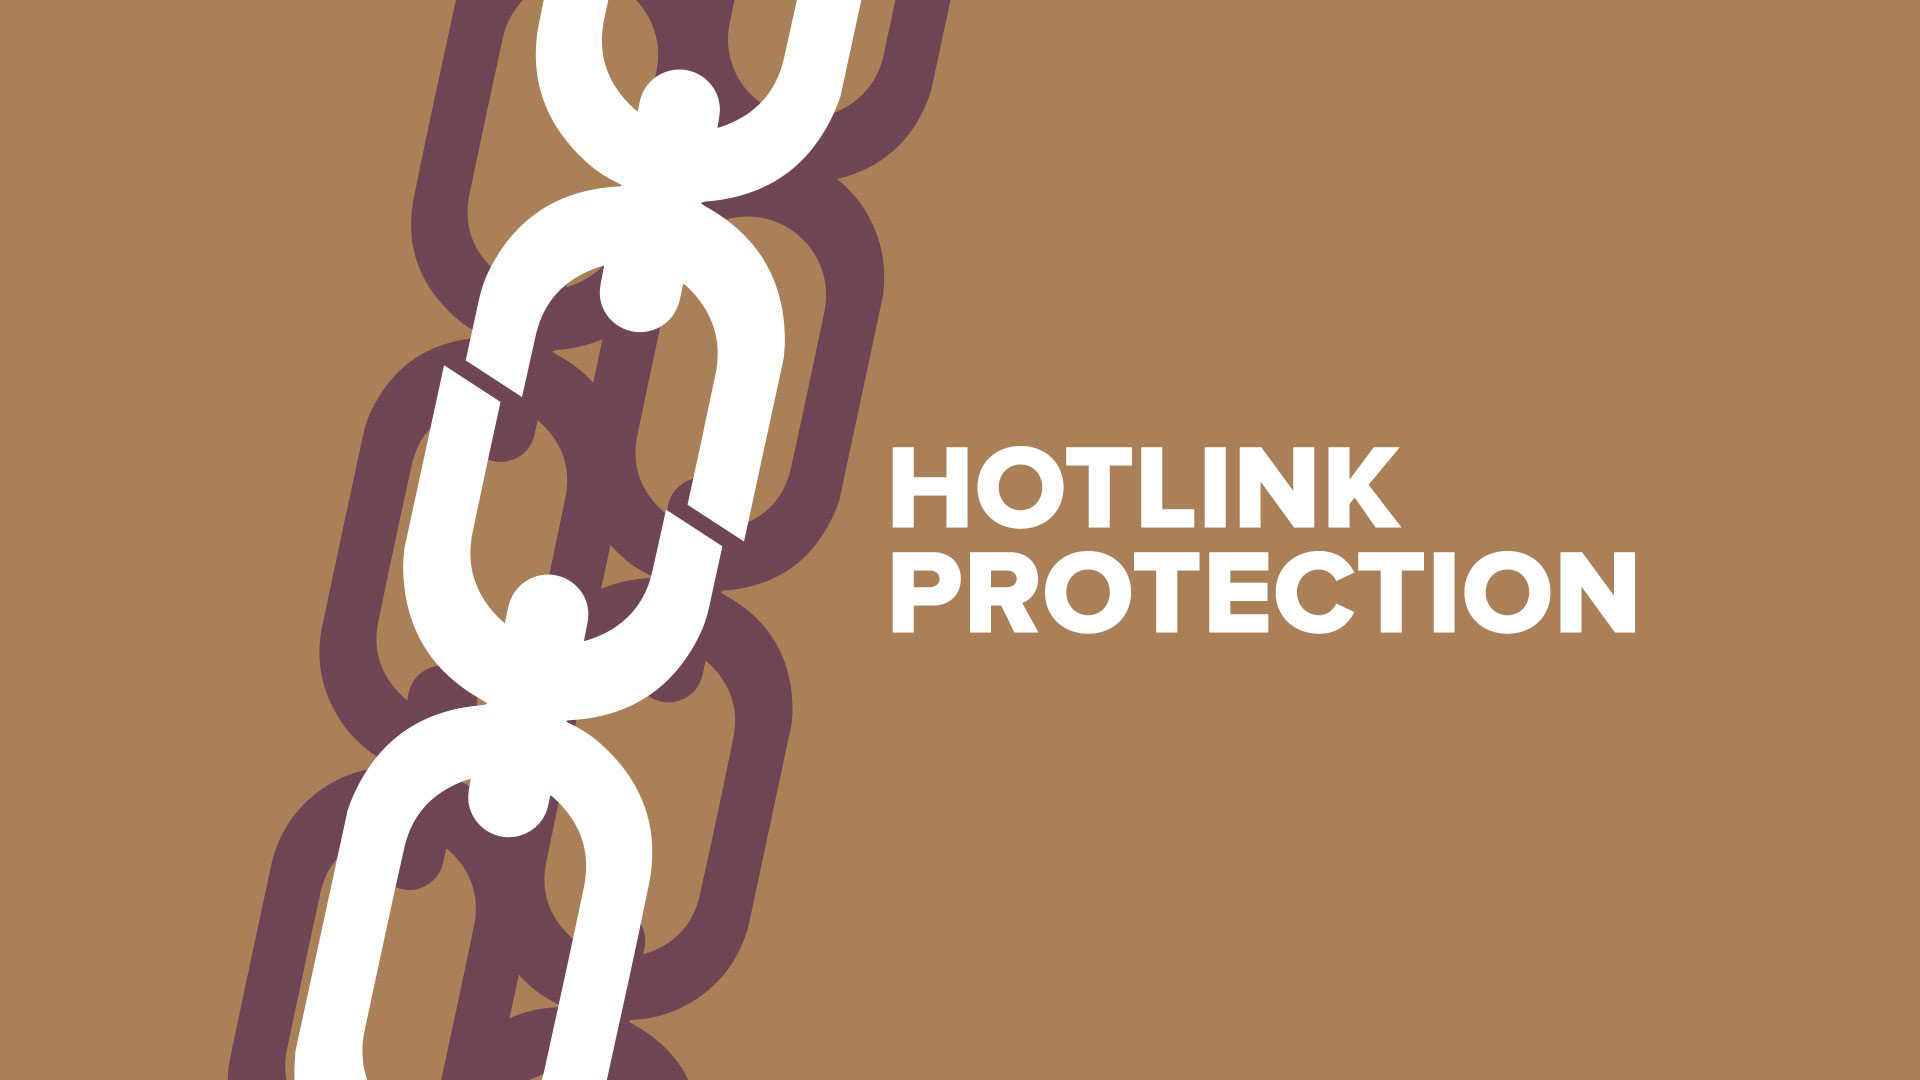 Hotlink Protection